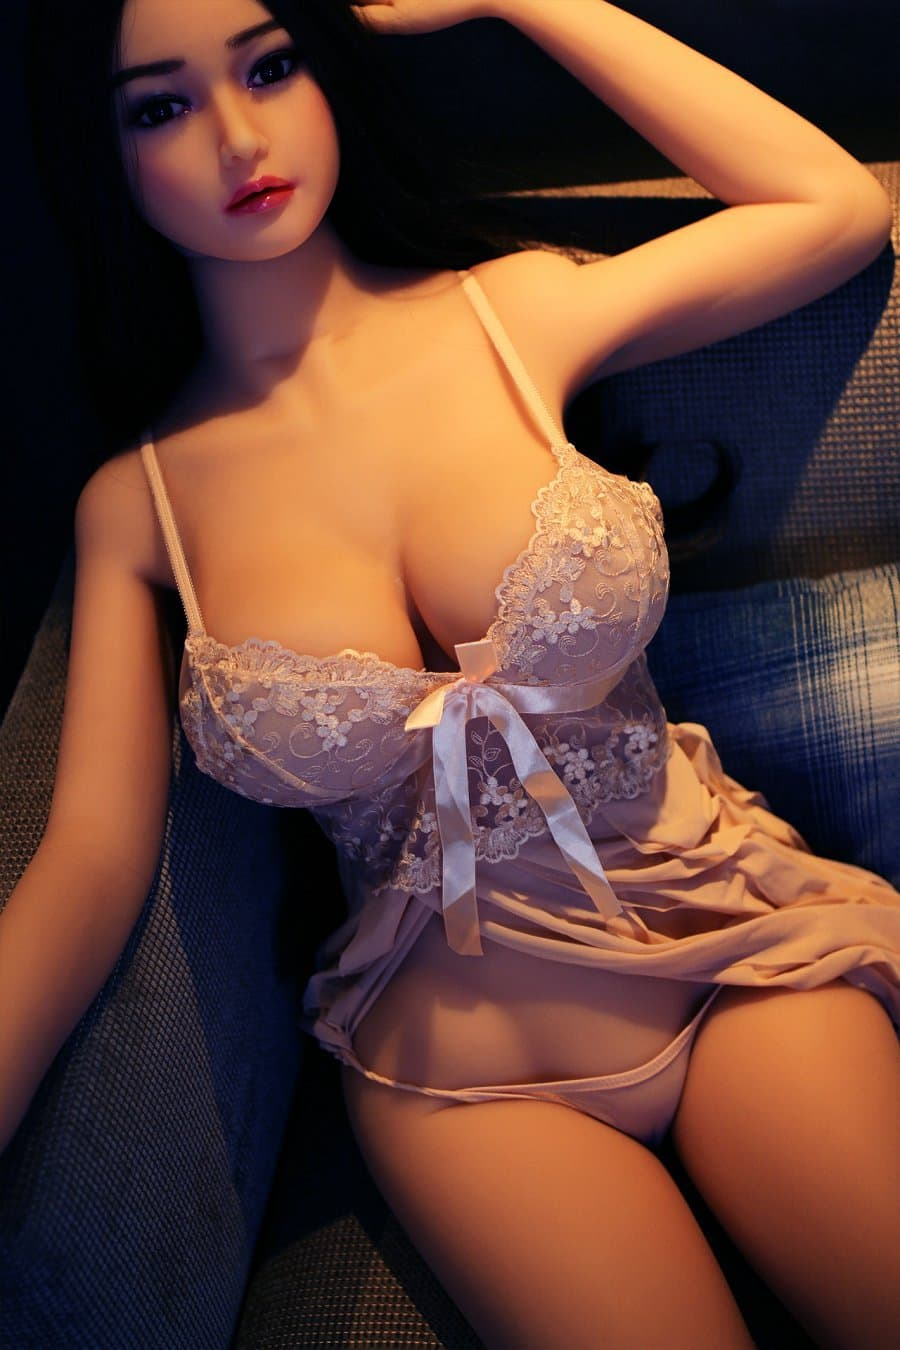 erica 165cm af black hair japanese big boobs skinny tpe asian sex doll(7)